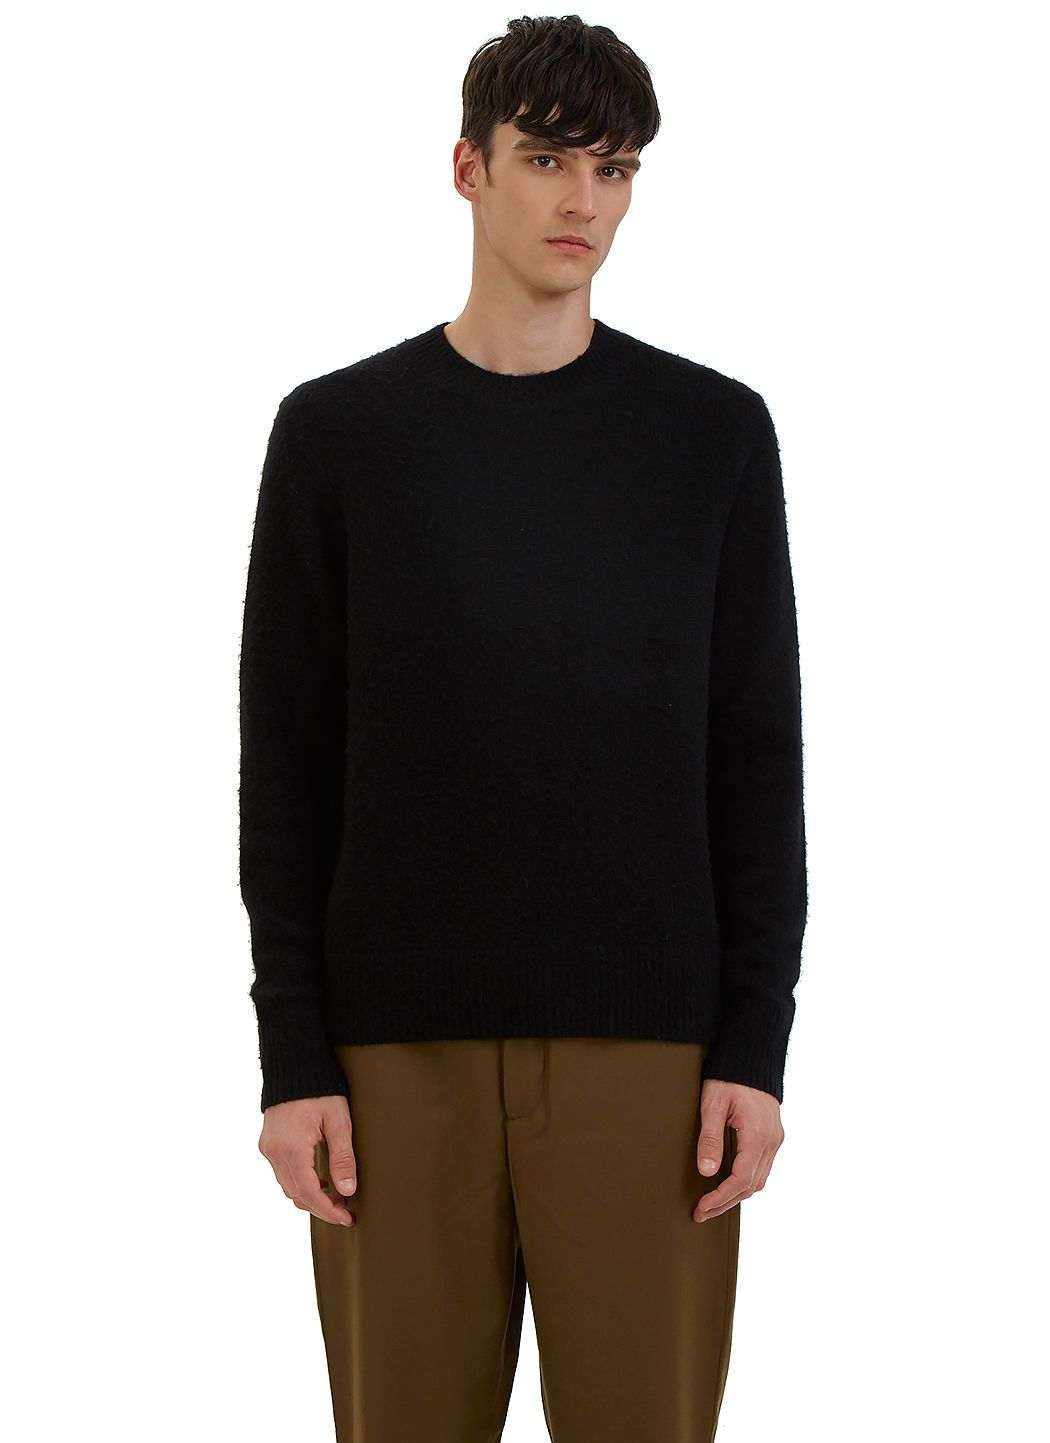 ACNE STUDIOS Men S Peele Cashmere Knit Sweater In Black.  acnestudios  cloth    e2451d85897